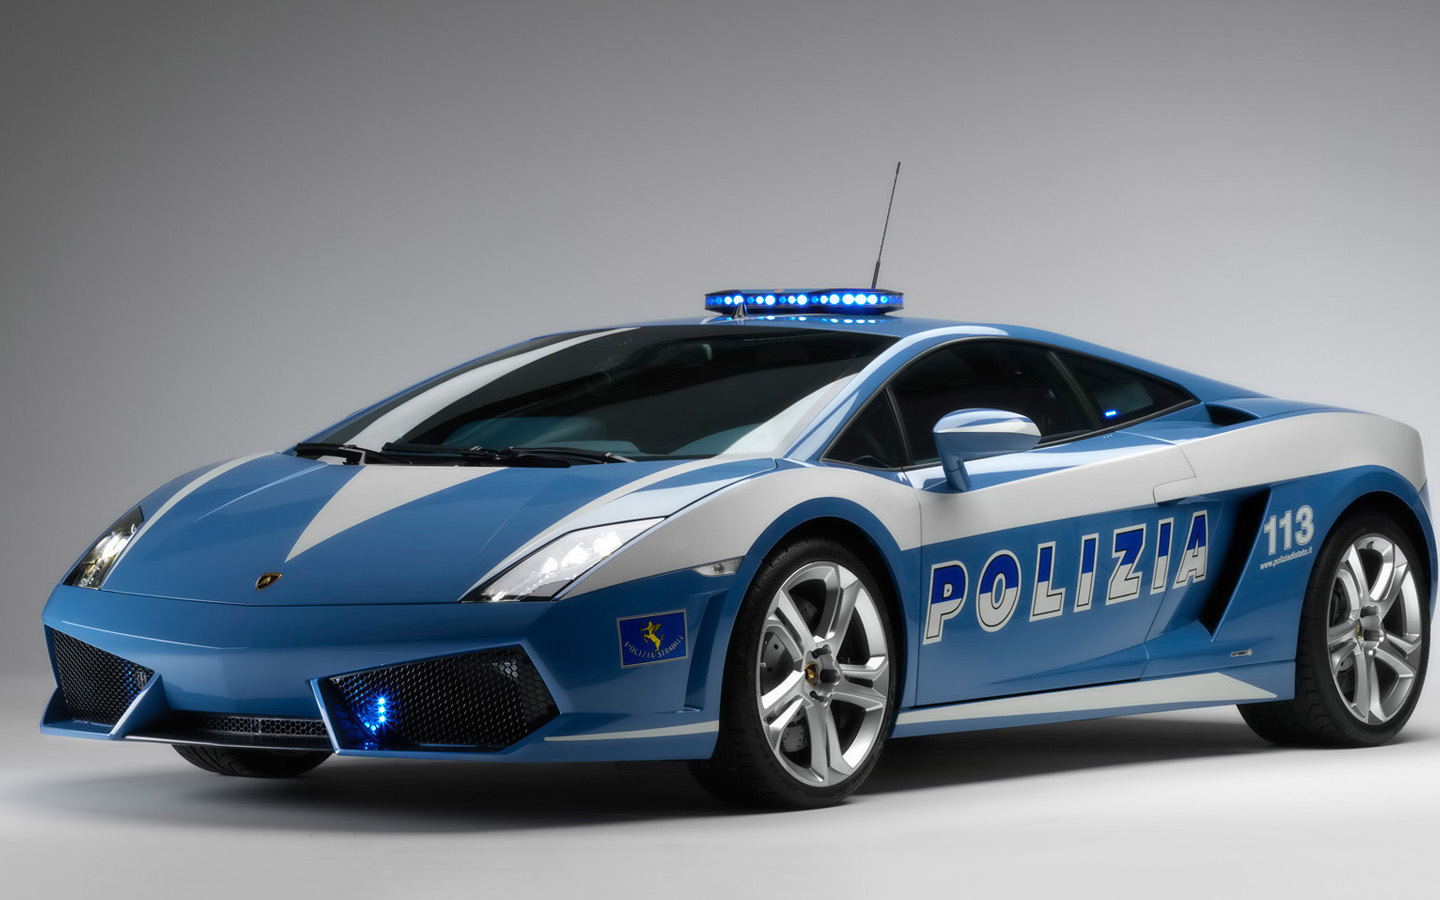 2009 Lamborghini Gallardo LP560 Police Car 354.59 Kb